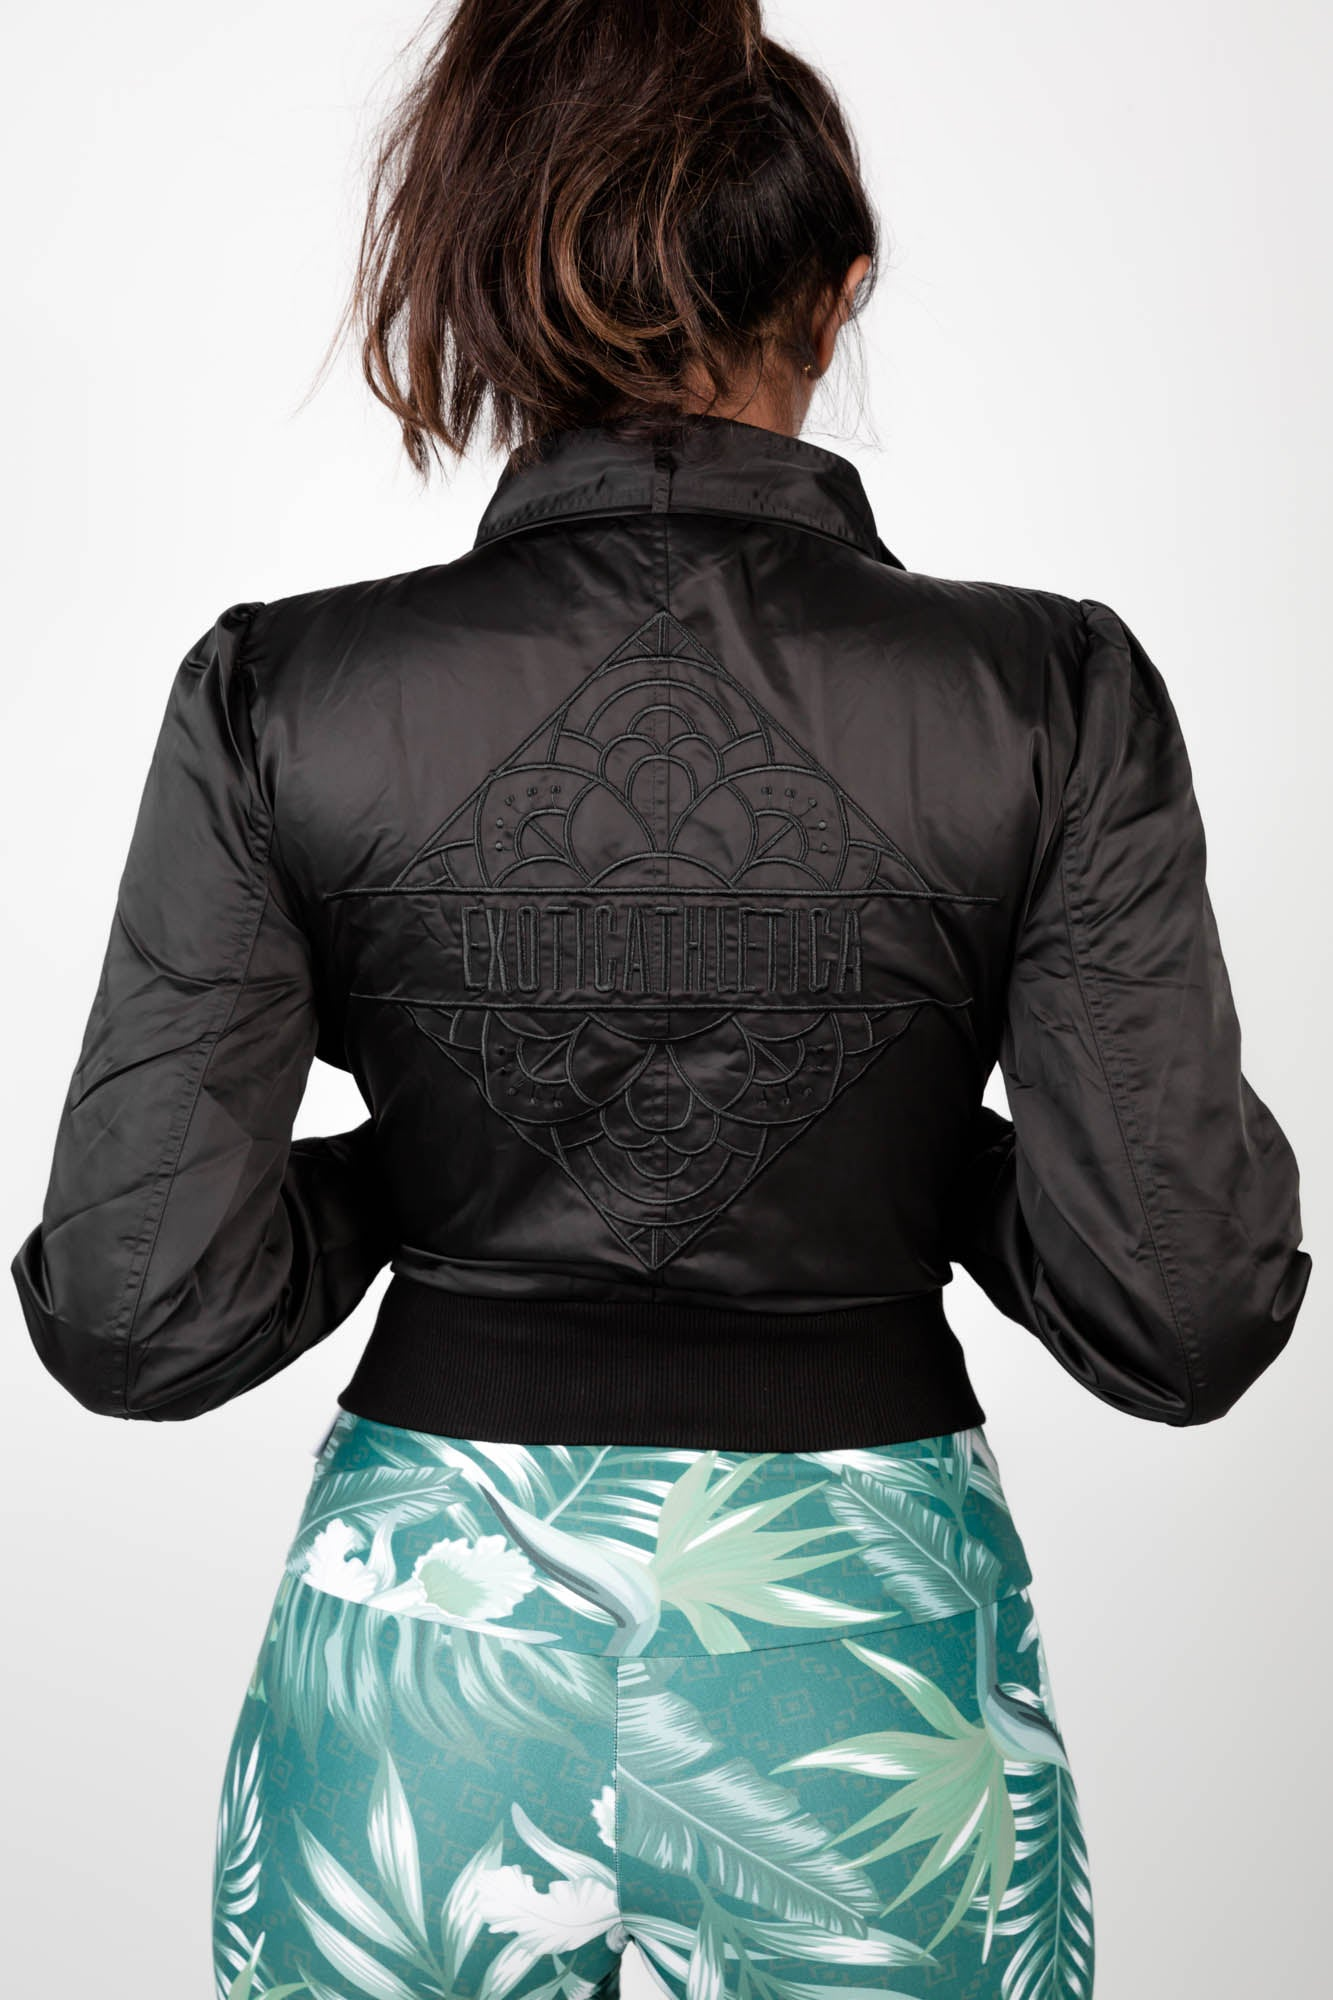 LIMITED EDITION Exoticathletica BOMBER JACKET - Black,  - exoticathletica - australian made activewear & swimwear